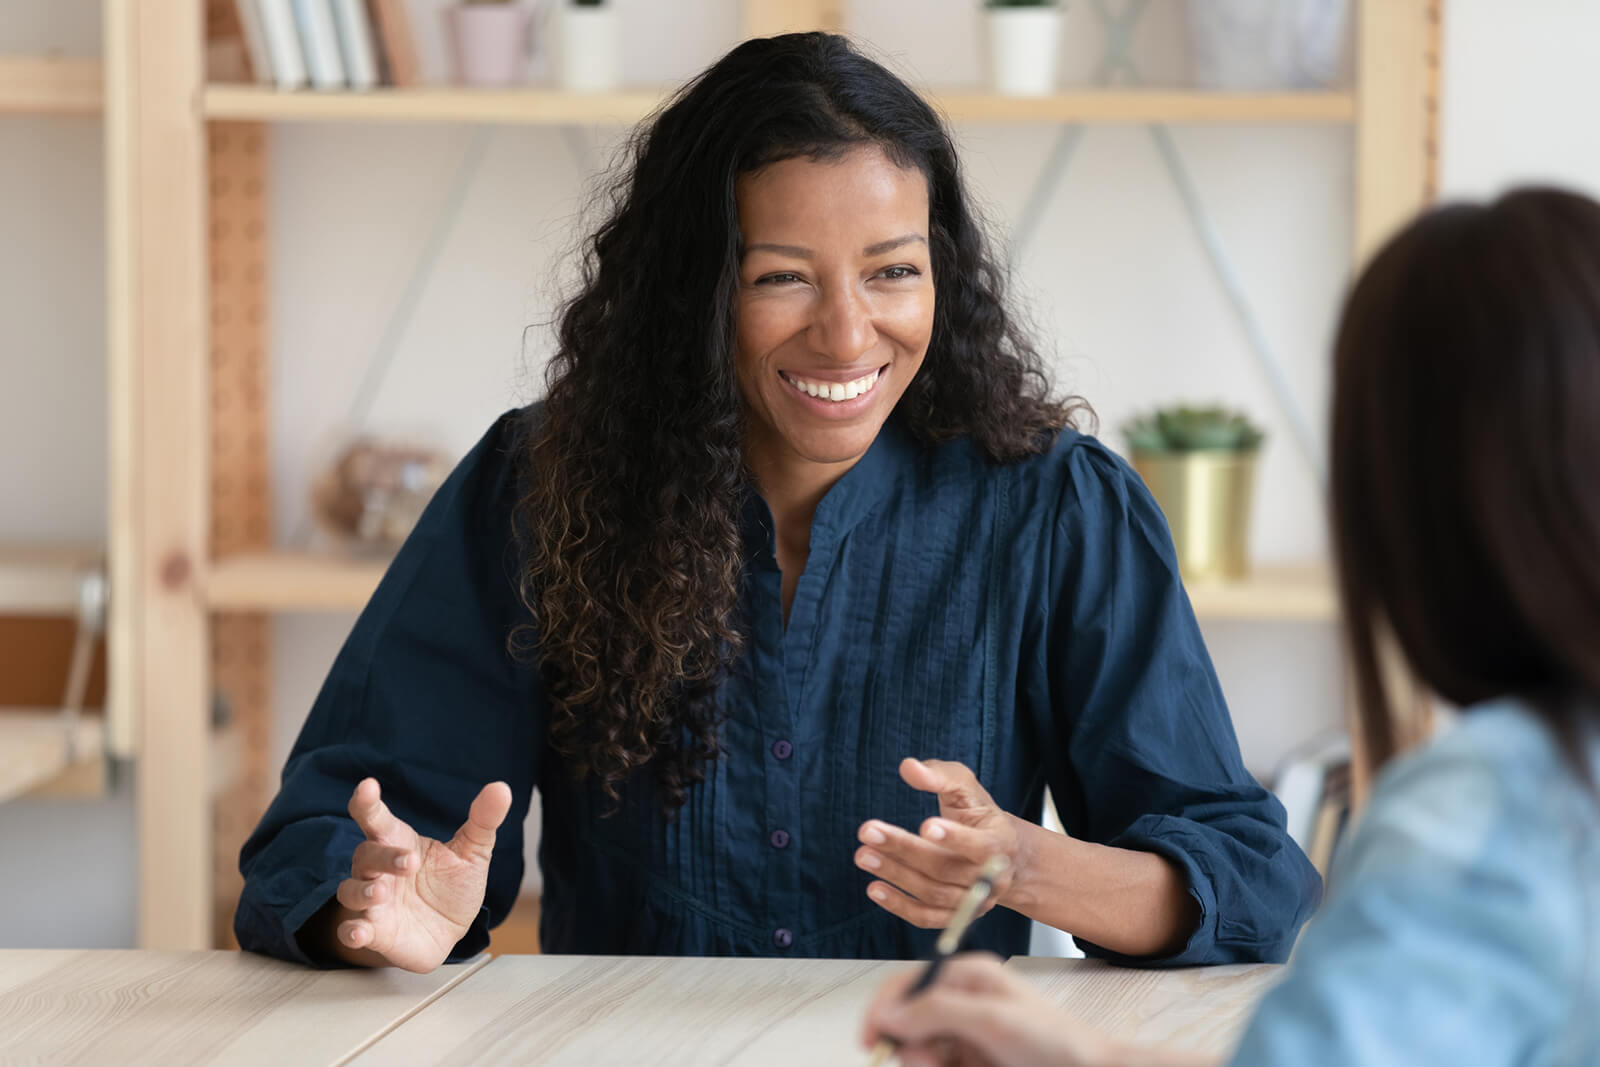 woman smiling while on interview